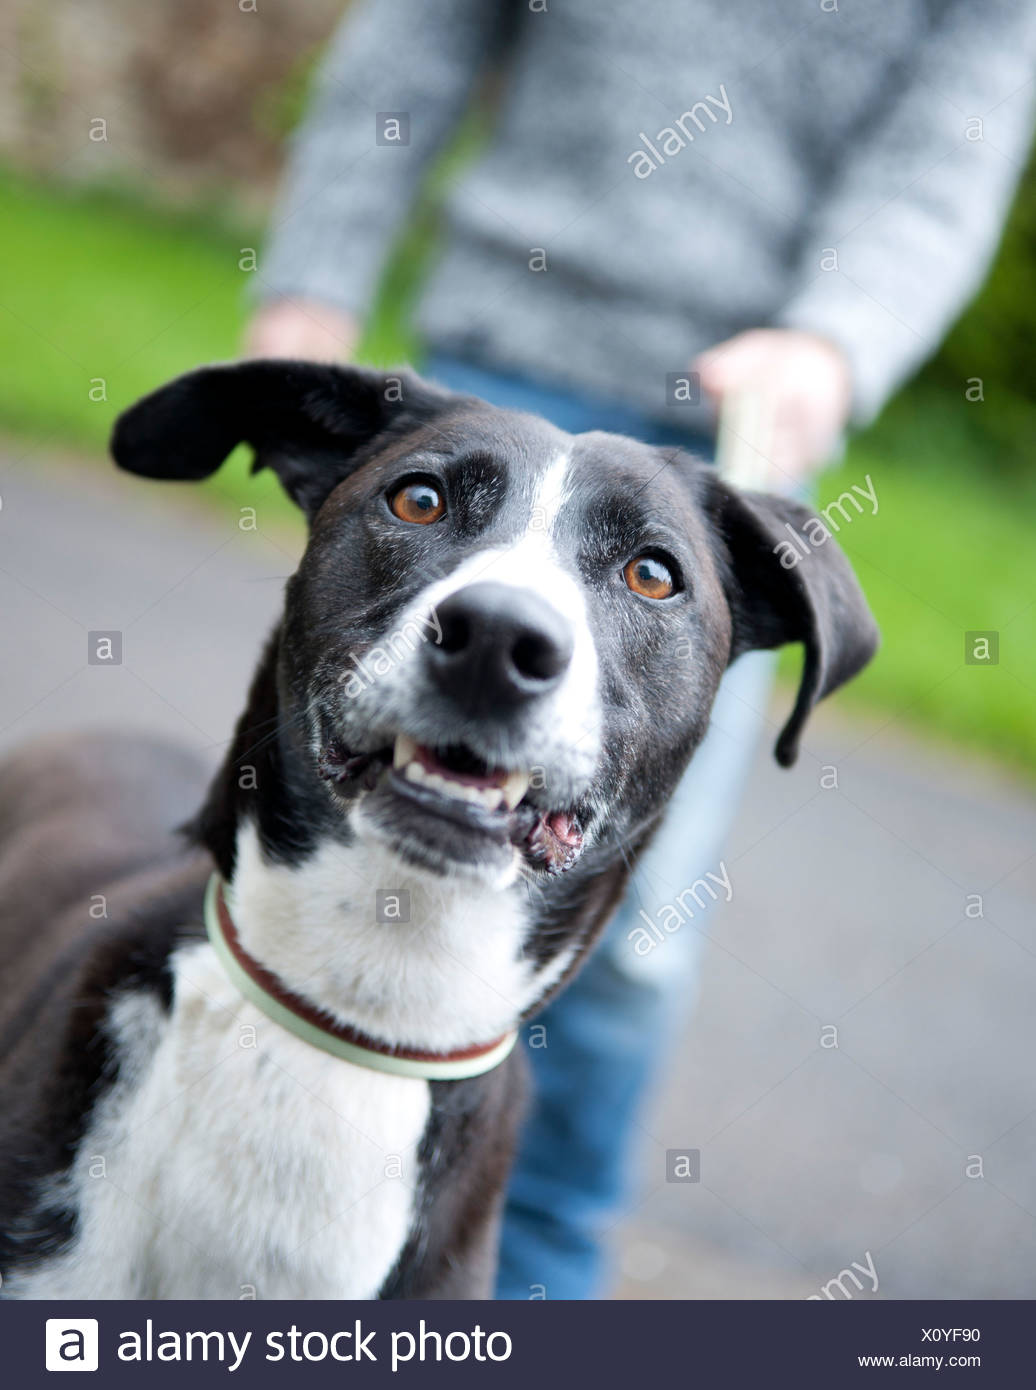 portrait of black dog walking on leash - Stock Image